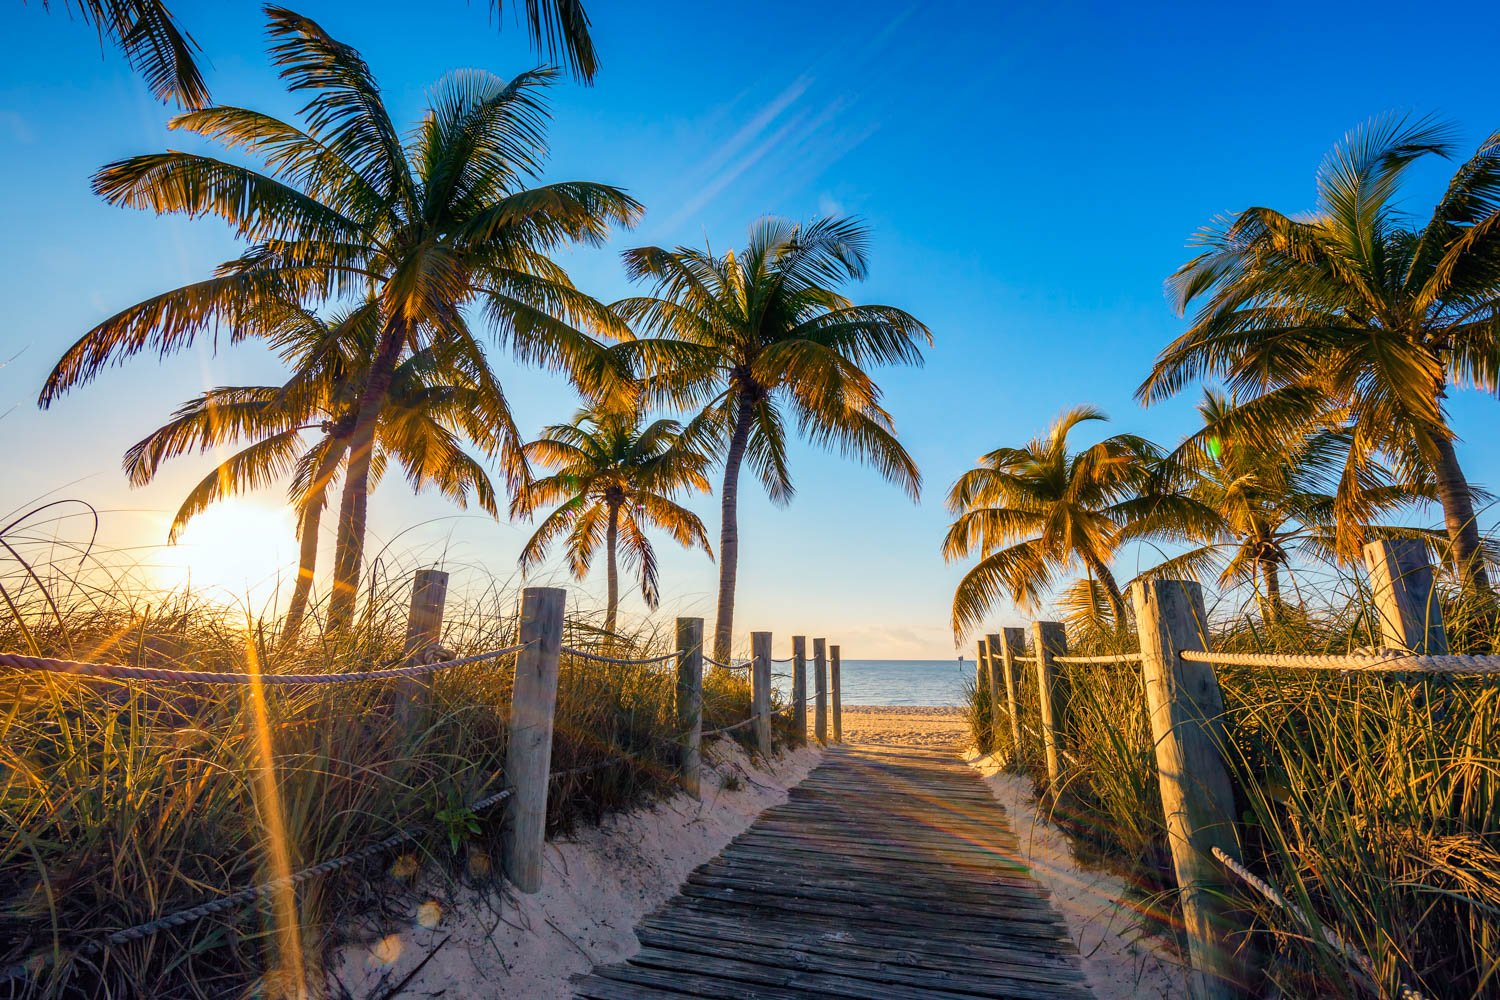 A passage to paradise in South Florida. There are many things to do in South FLorida and places to visit in Florida to keep you busy.